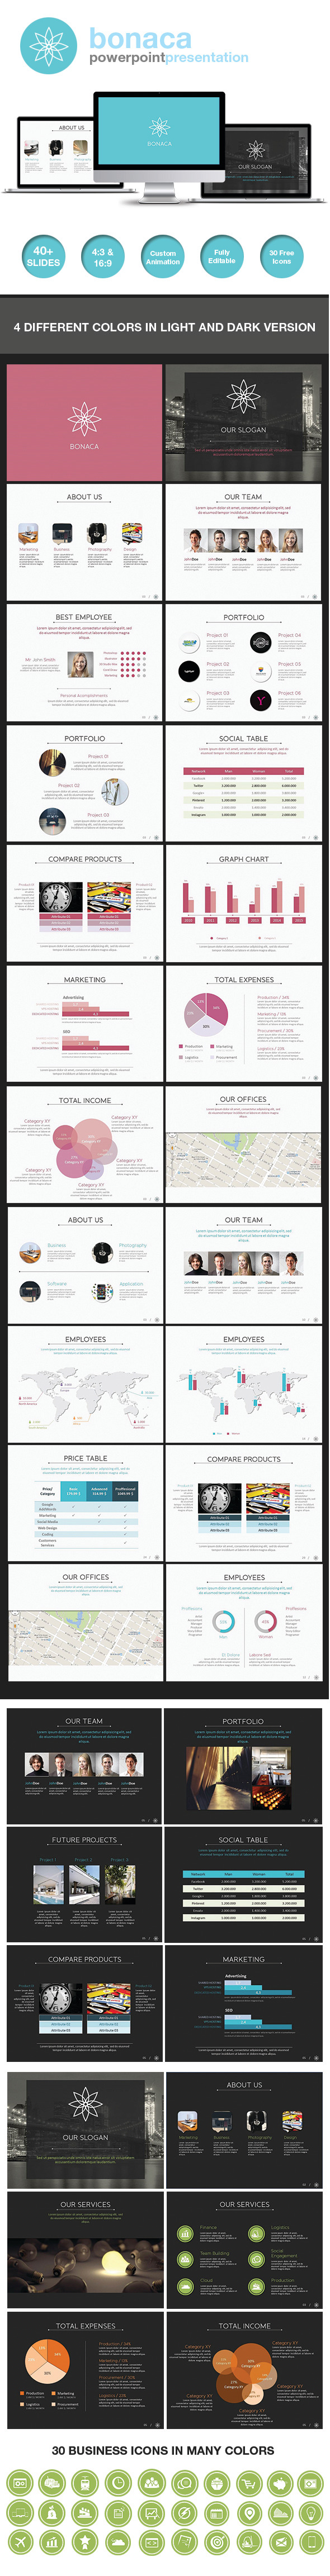 Bonaca Powerpoint Presentation - Business PowerPoint Templates